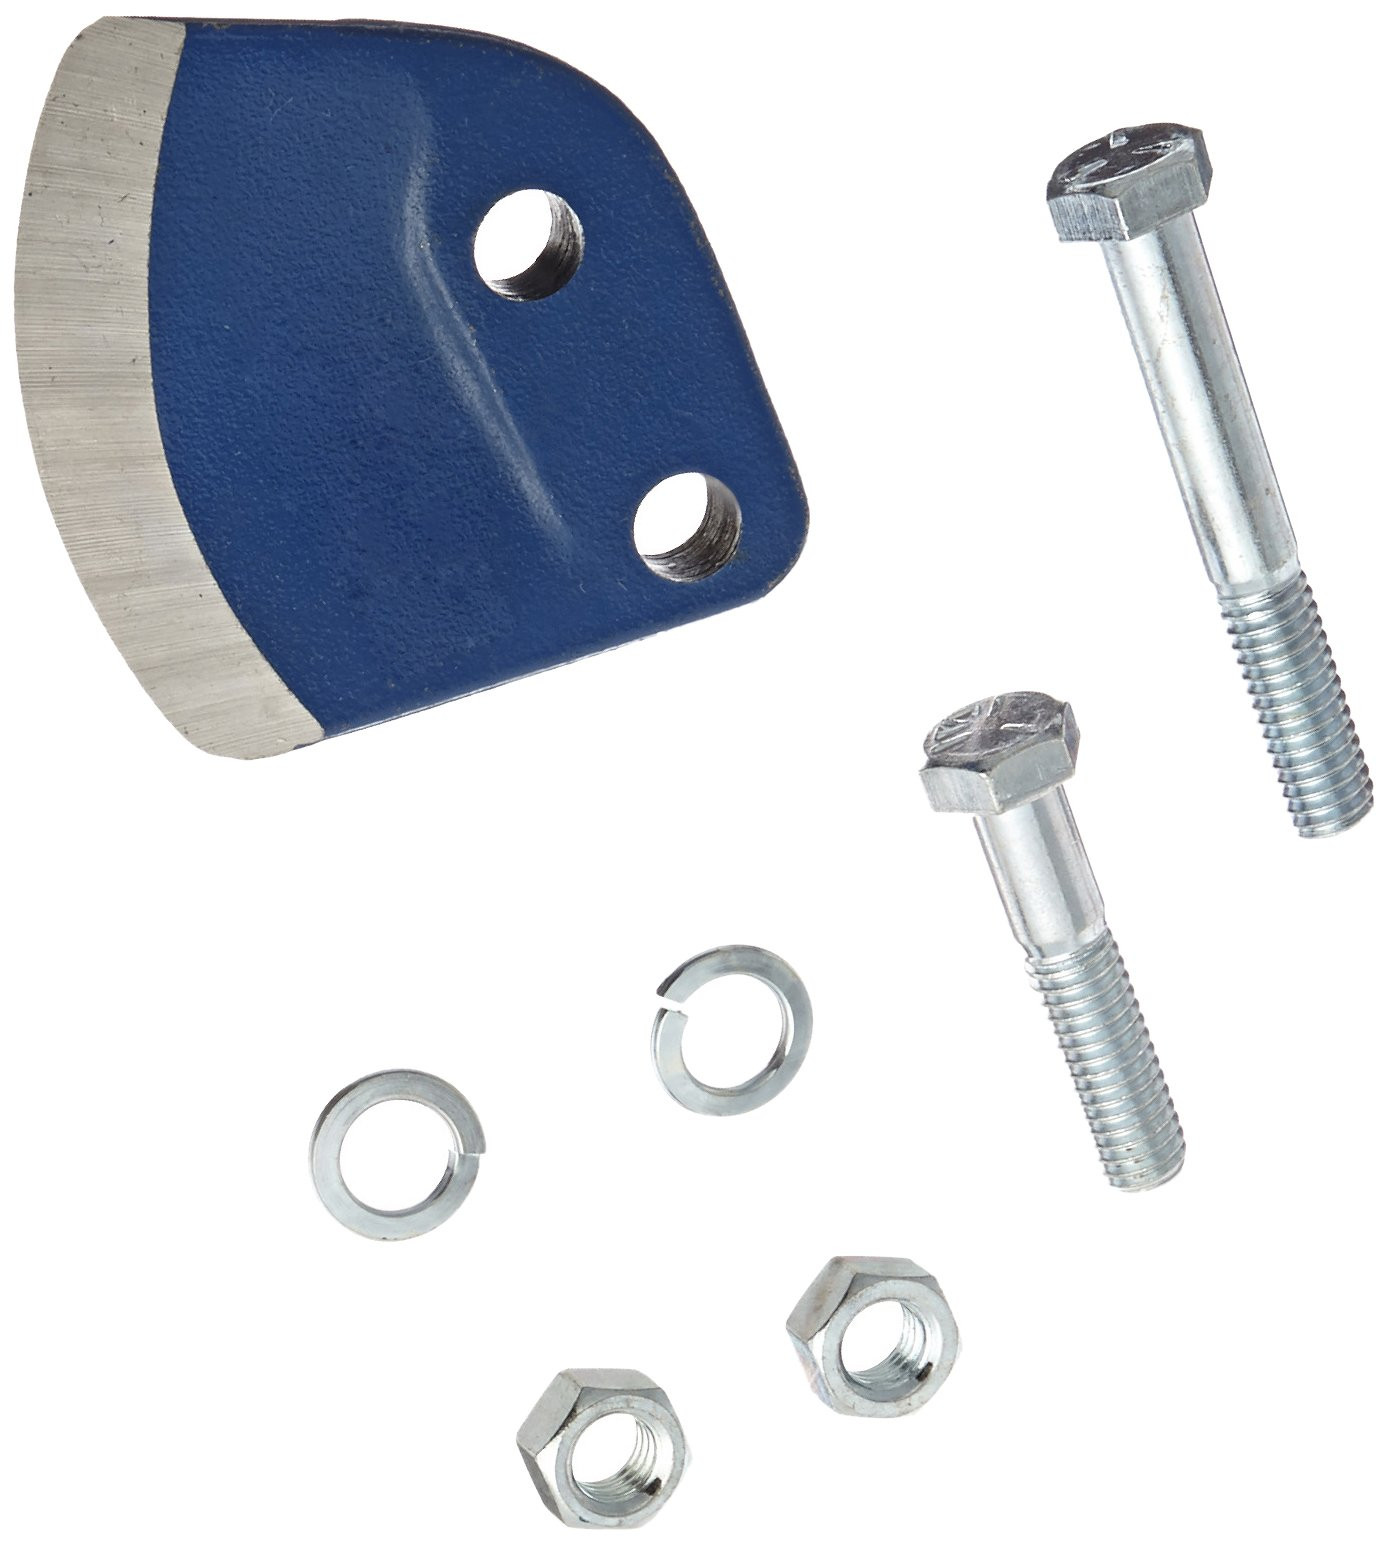 Wesco 272012 Steel Replacement Blade, For 272018 Drum Deheader by Wesco